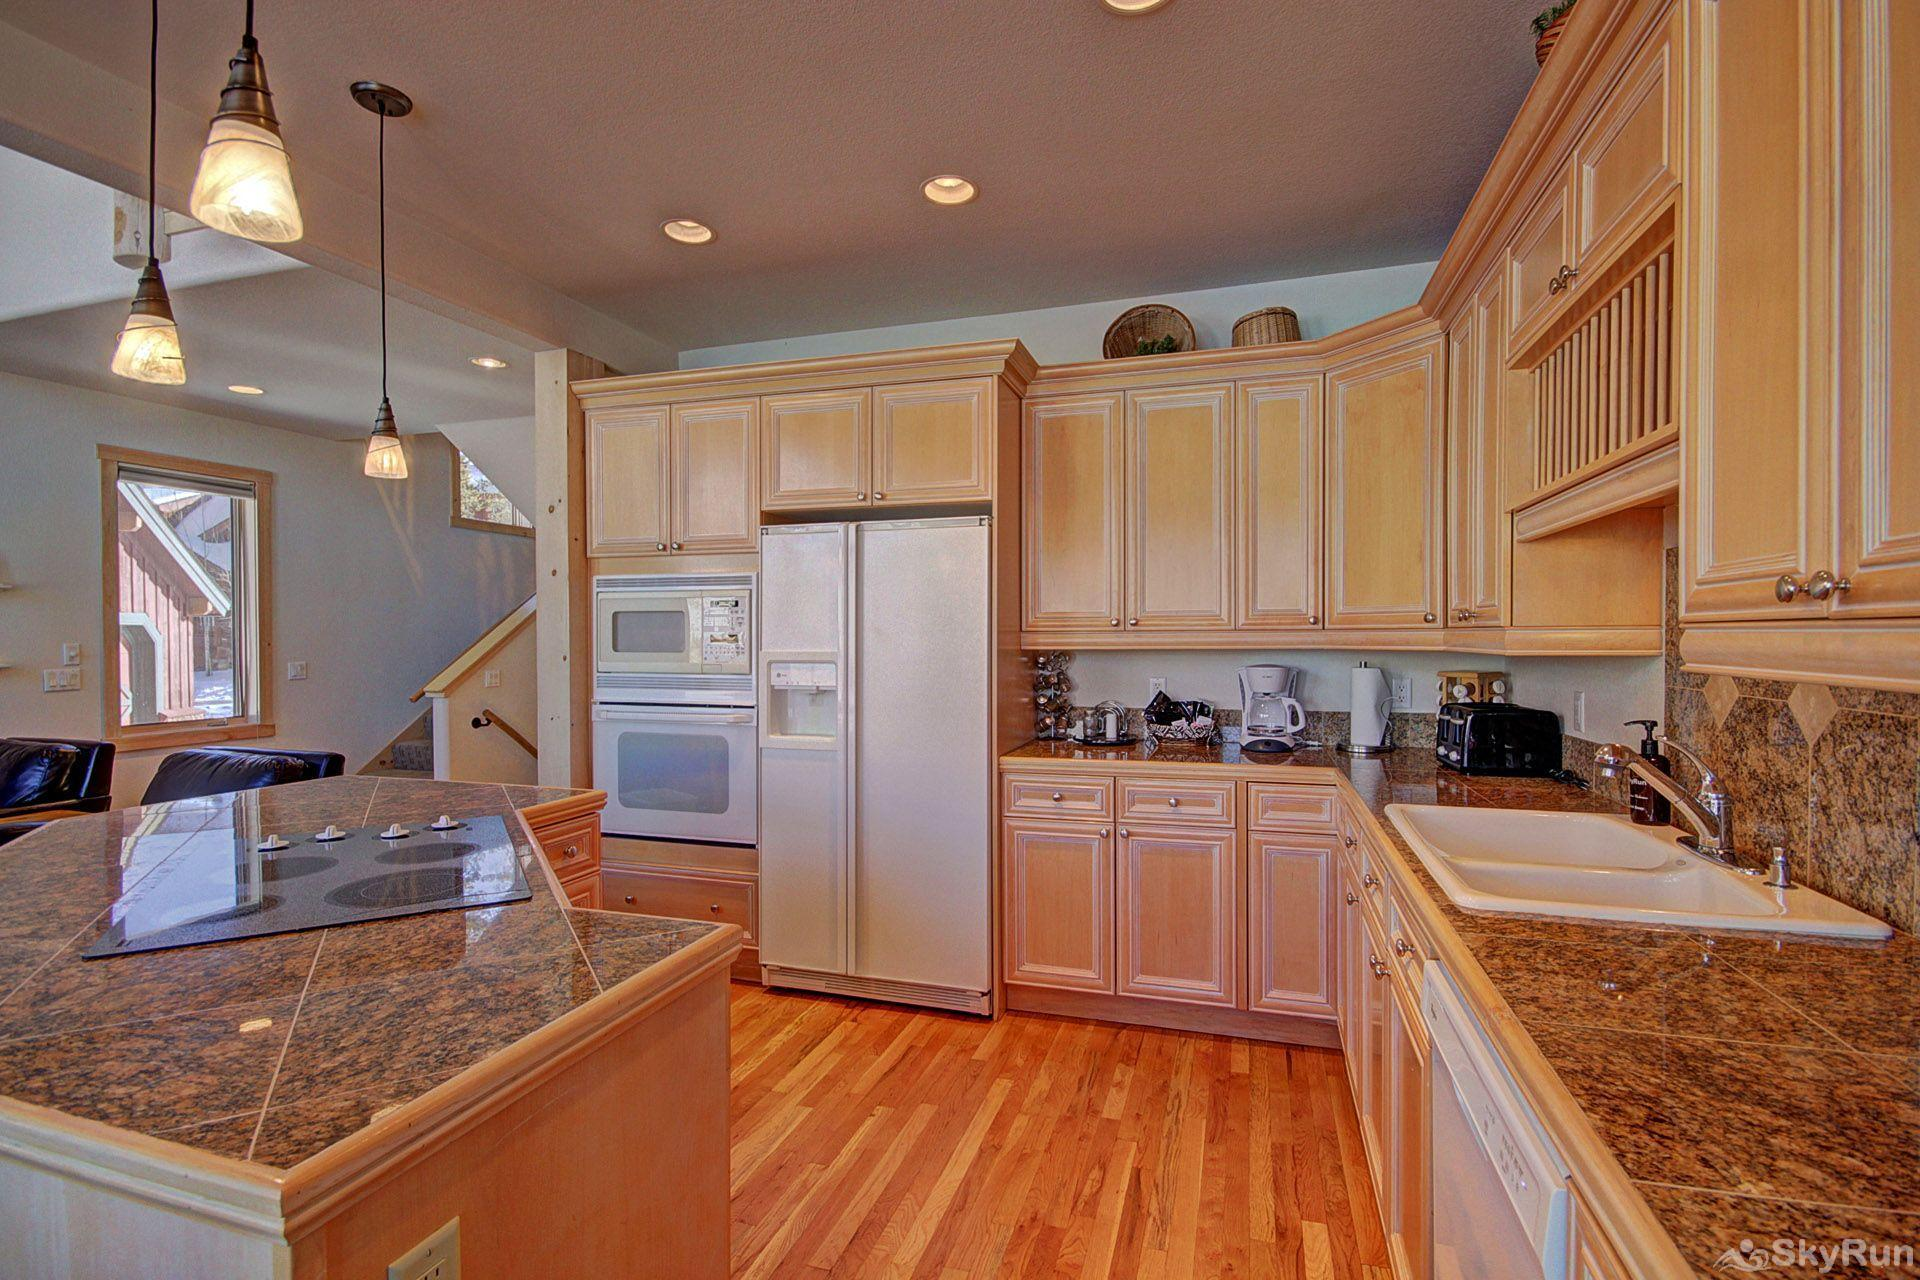 EN402 Ranch at Eagles Nest 3BR 4BA Gourmet Kitchen